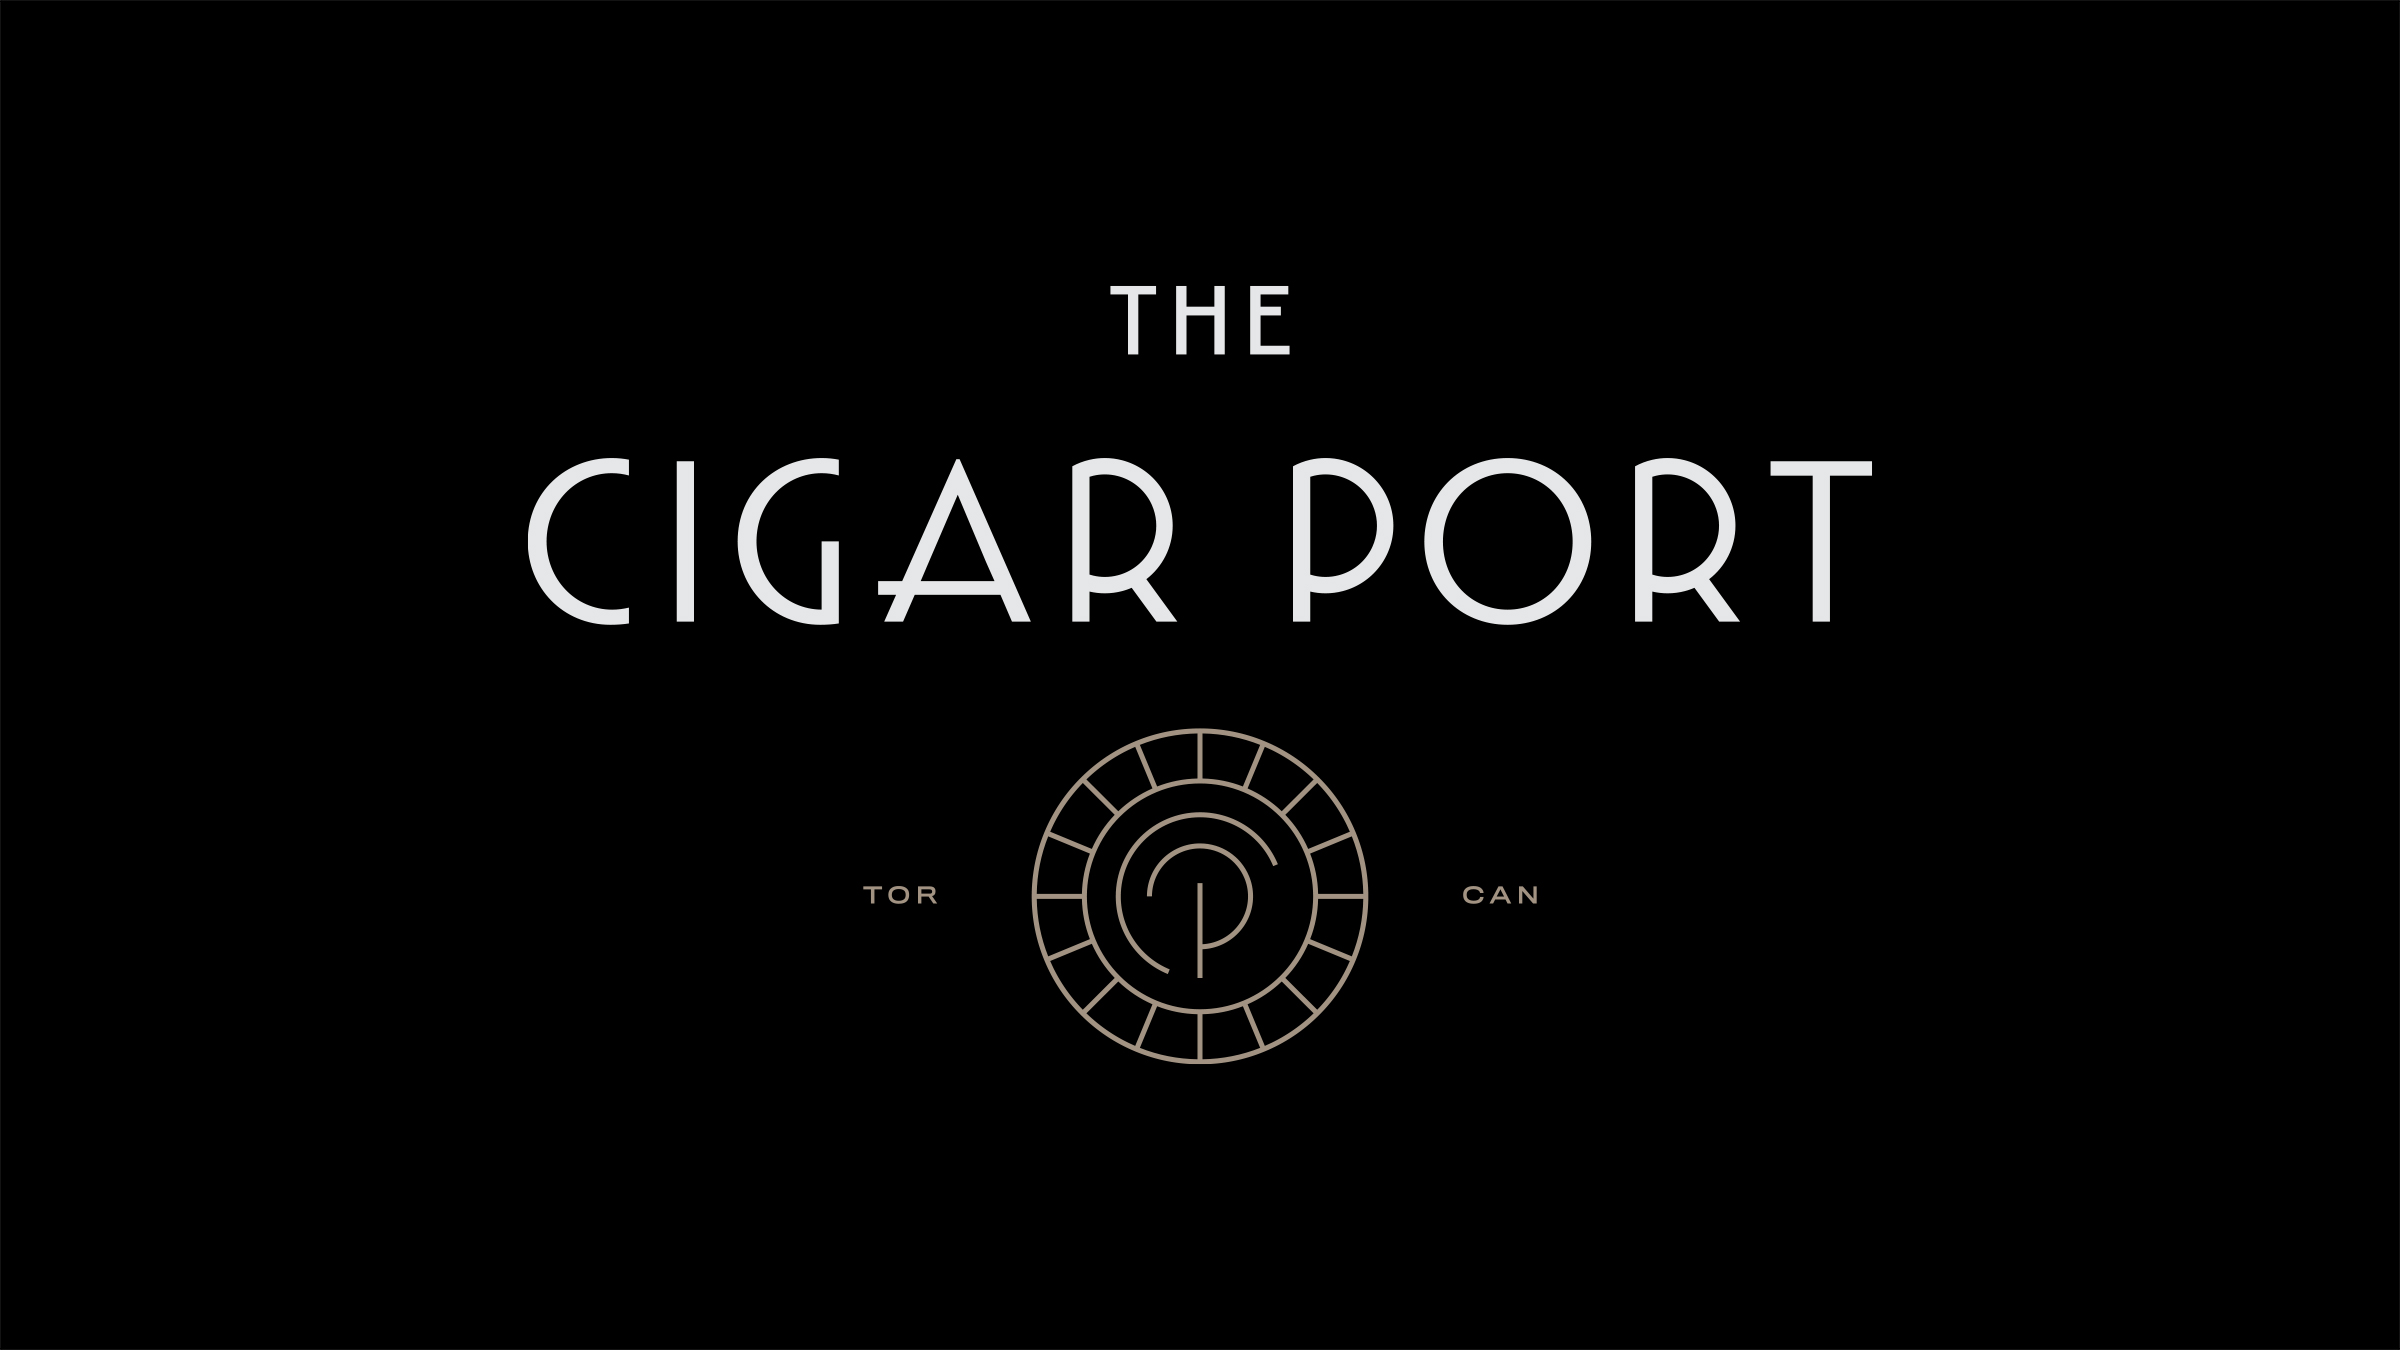 The Cigar Port brand logo white and gold on black